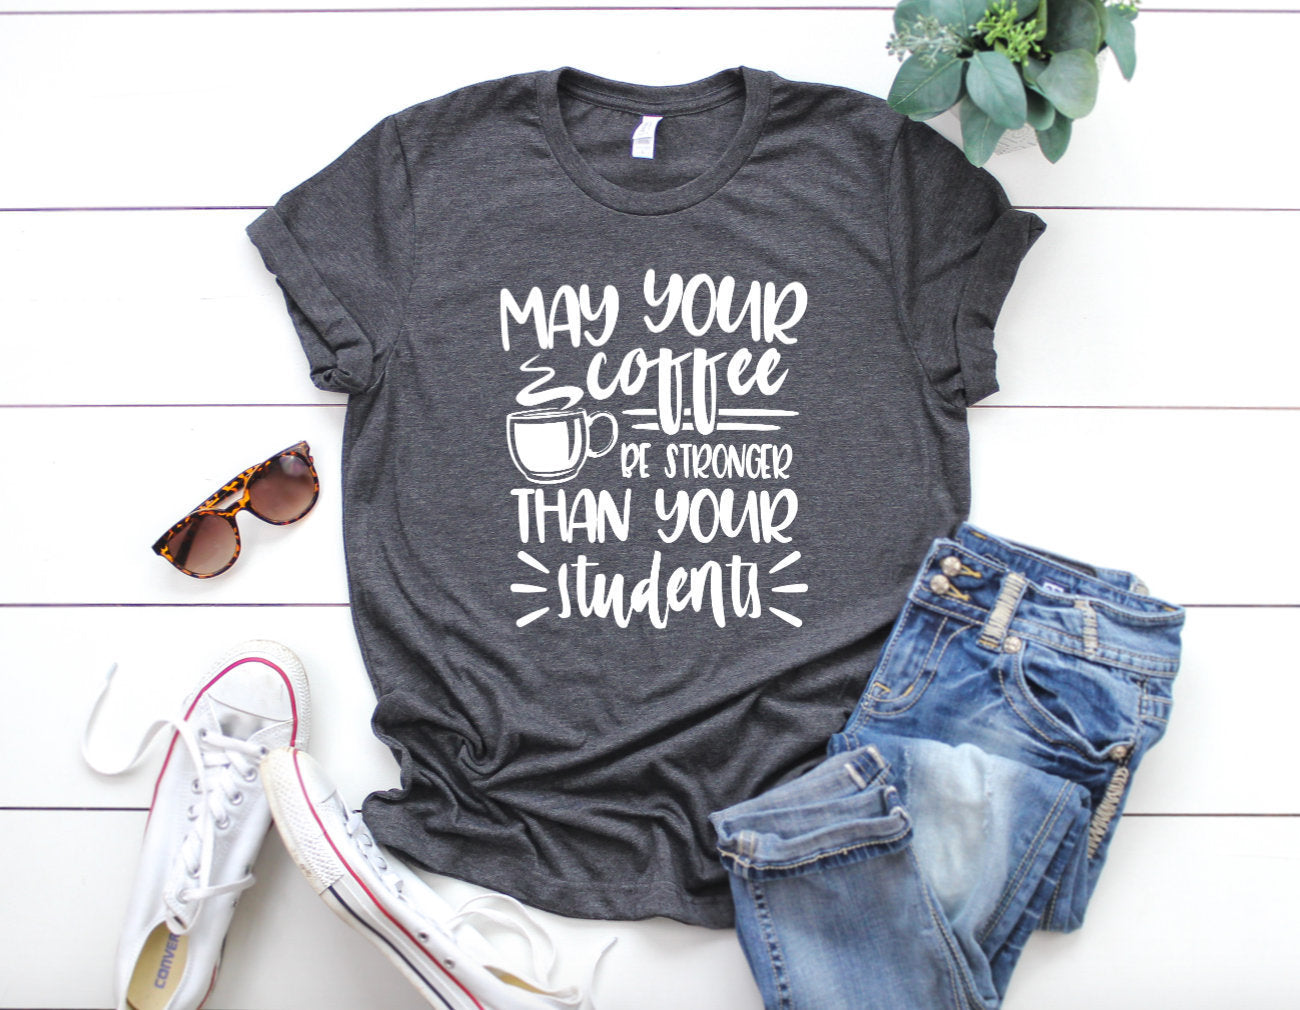 May Your Coffee Be Stronger Than Your Students Dark Heather Grey T-shirt - Coffee Shirts for Teachers